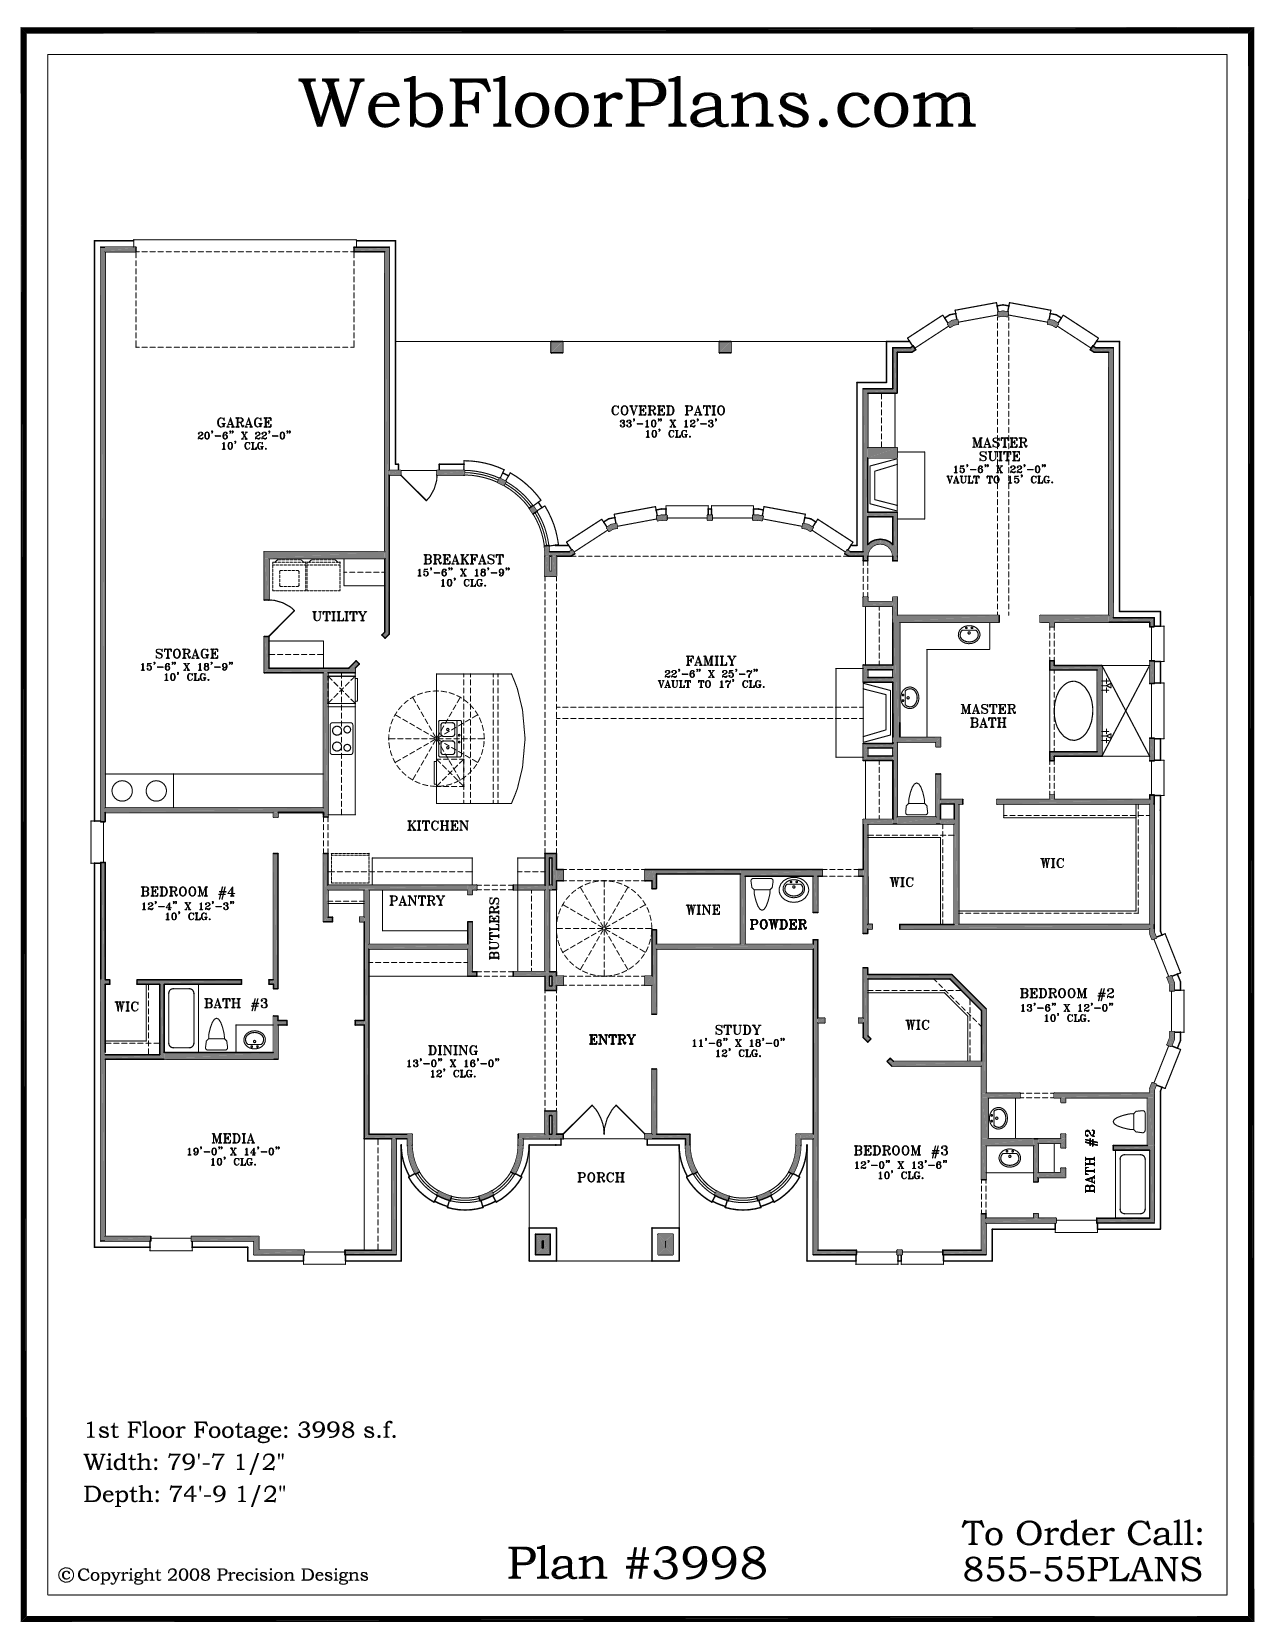 nice single story home plans 1 one story house plans - Single Story House Plans